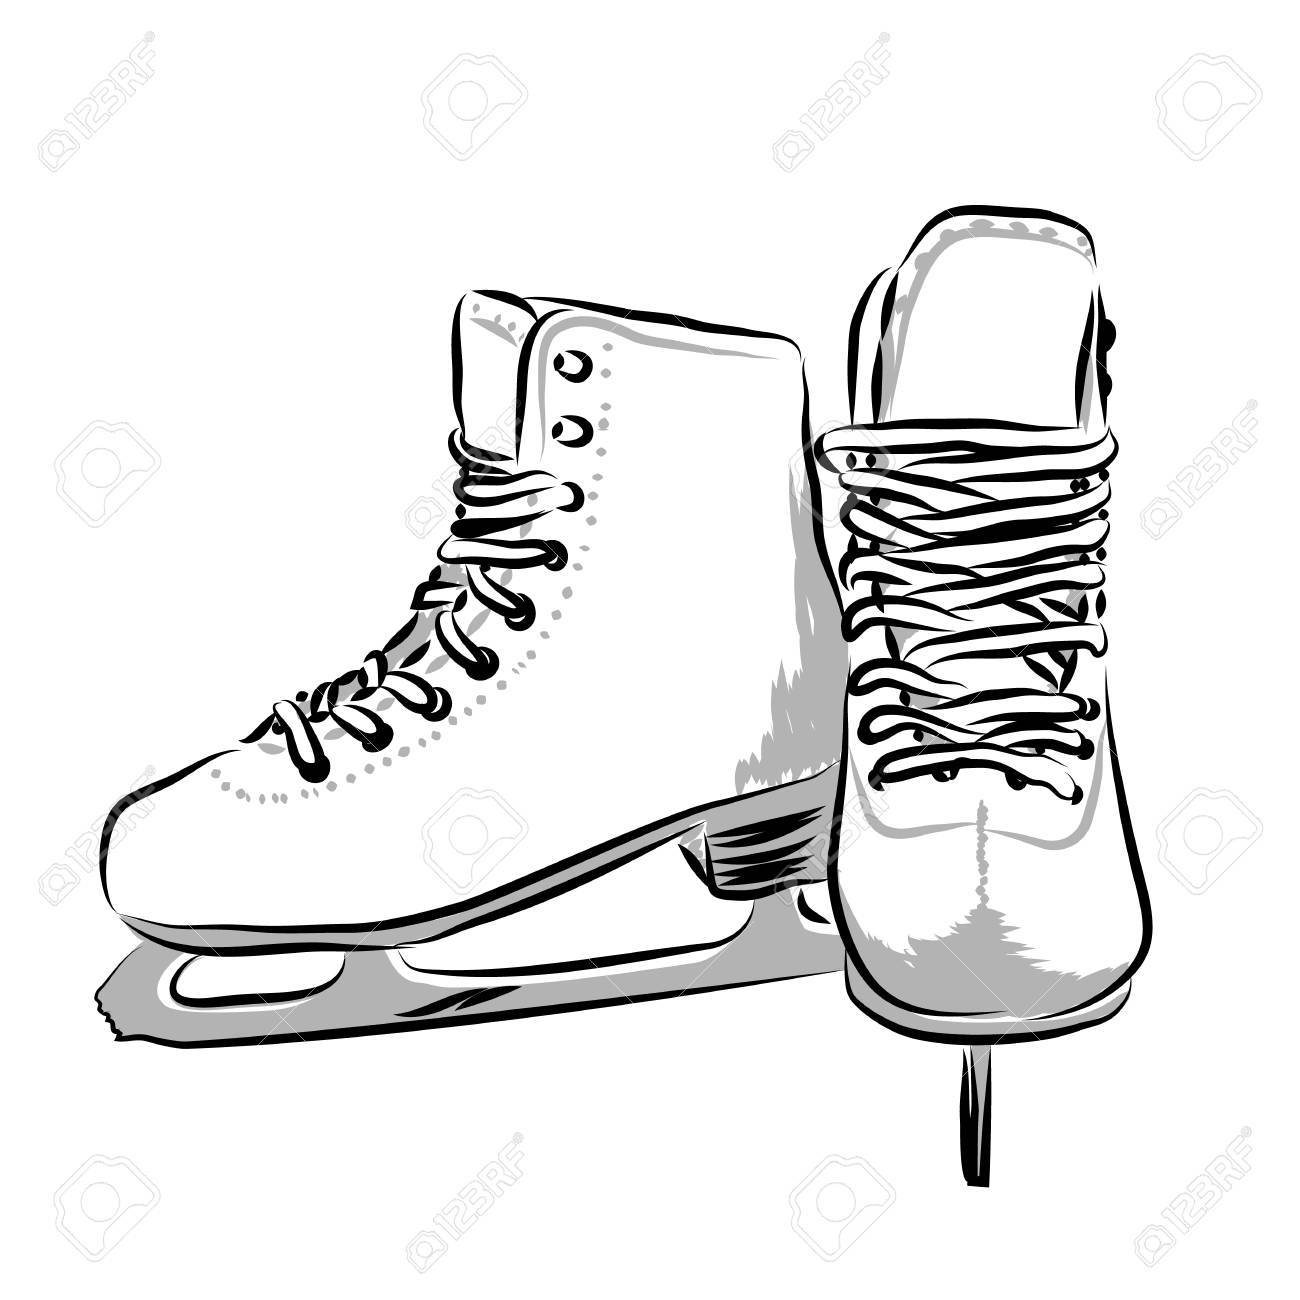 Ice Skate Drawing.